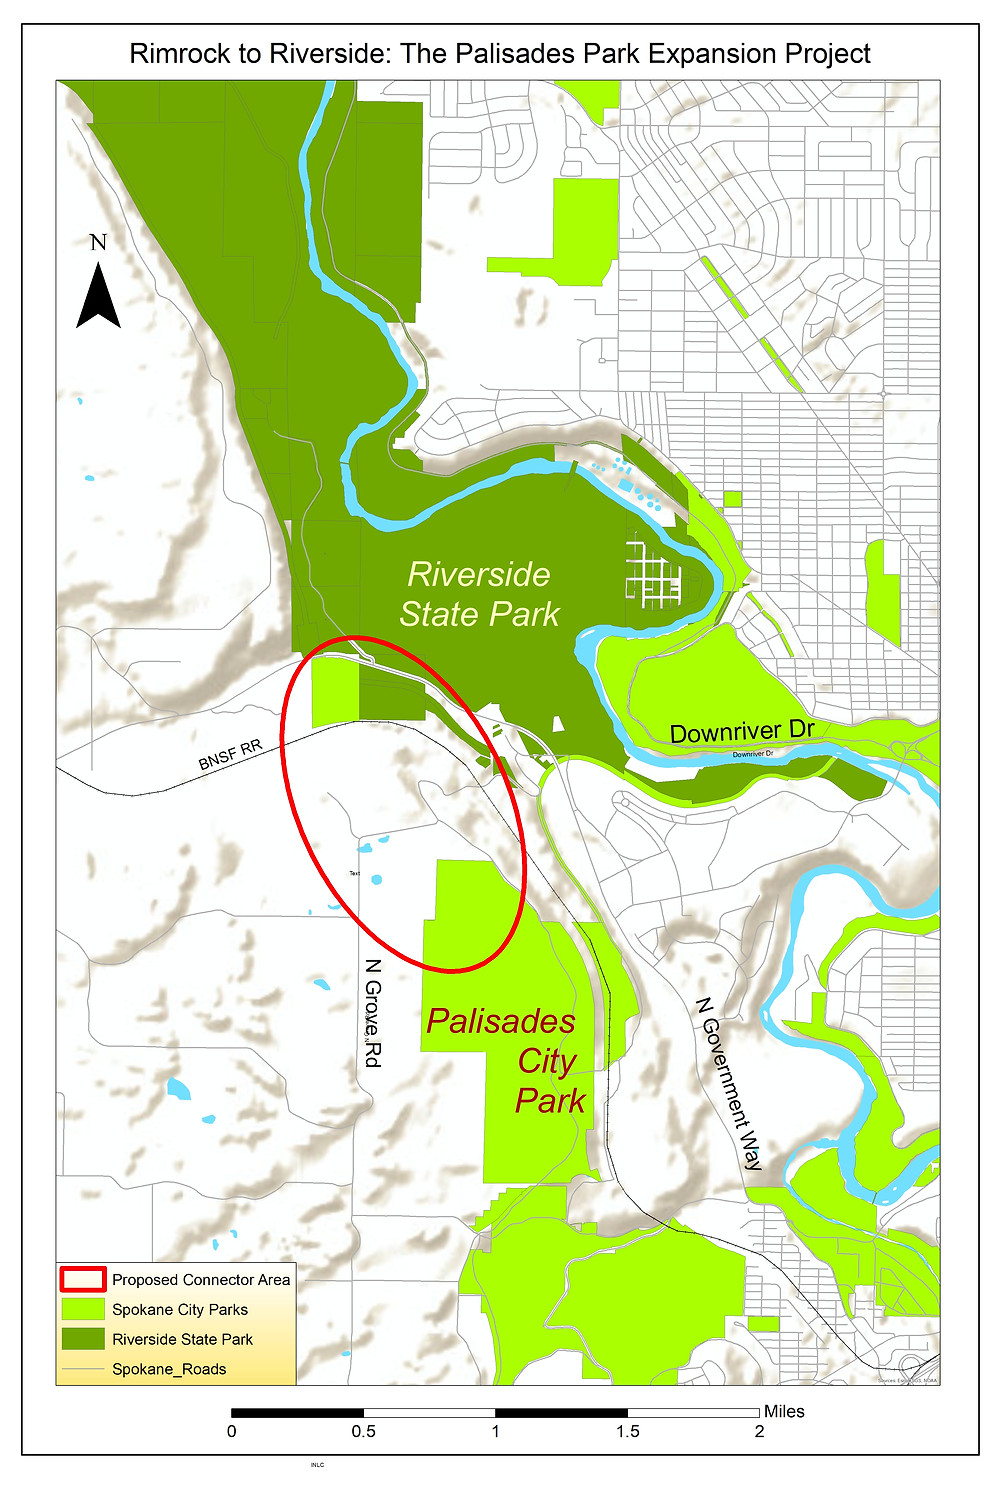 Map of Rimrock to Riverside project area